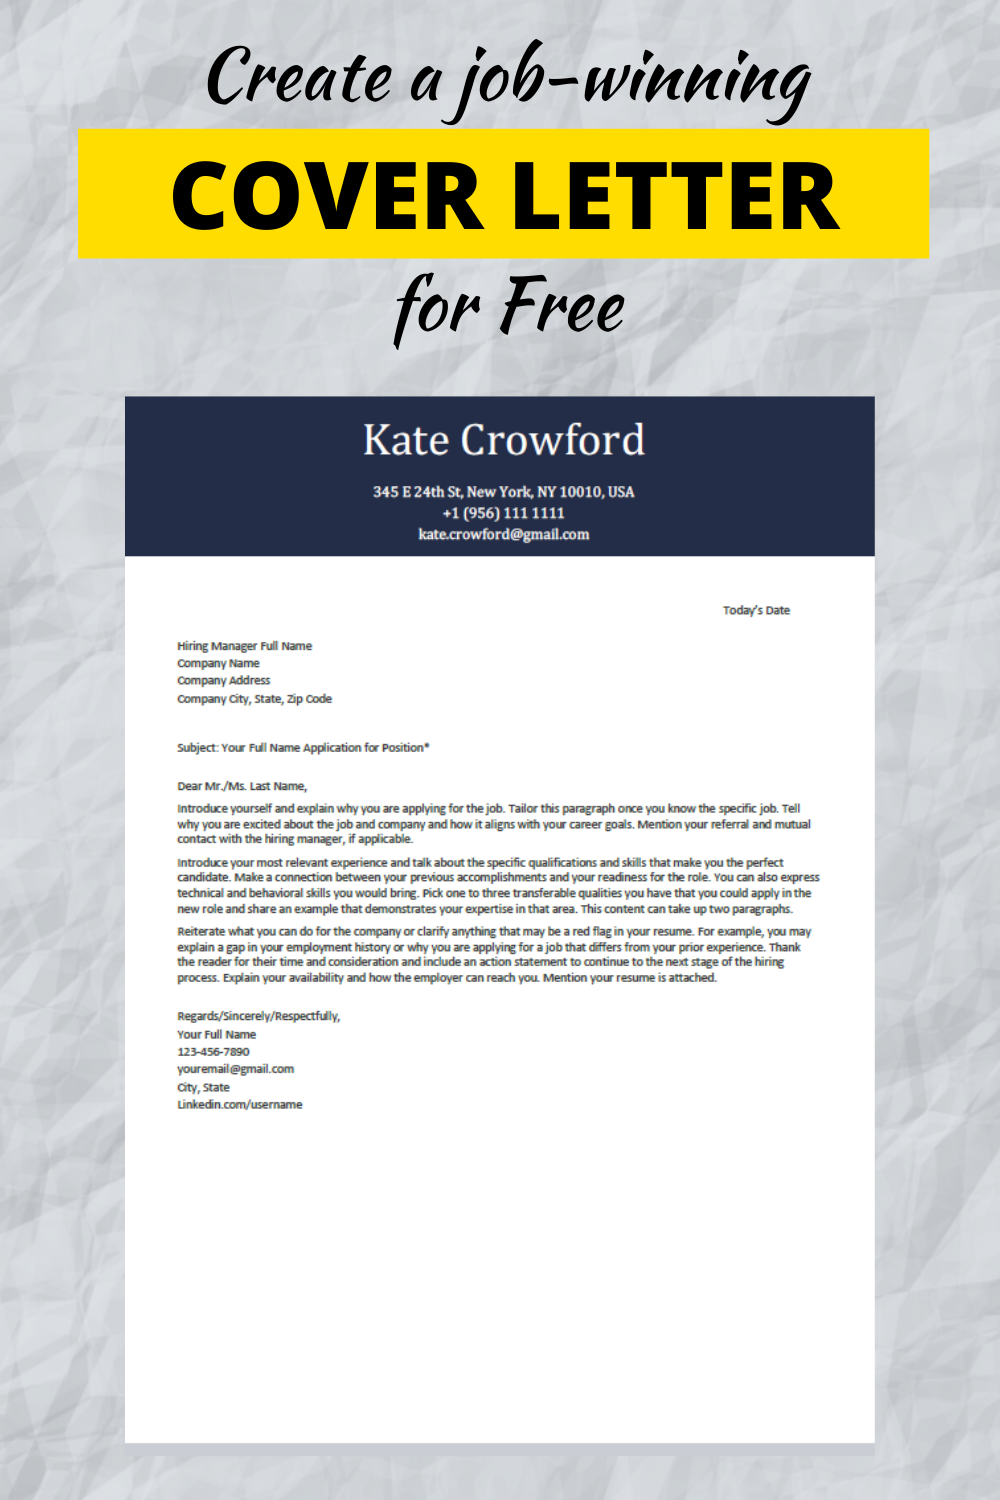 Free Cover Letter Templates To Download In 2020 Cover Letter